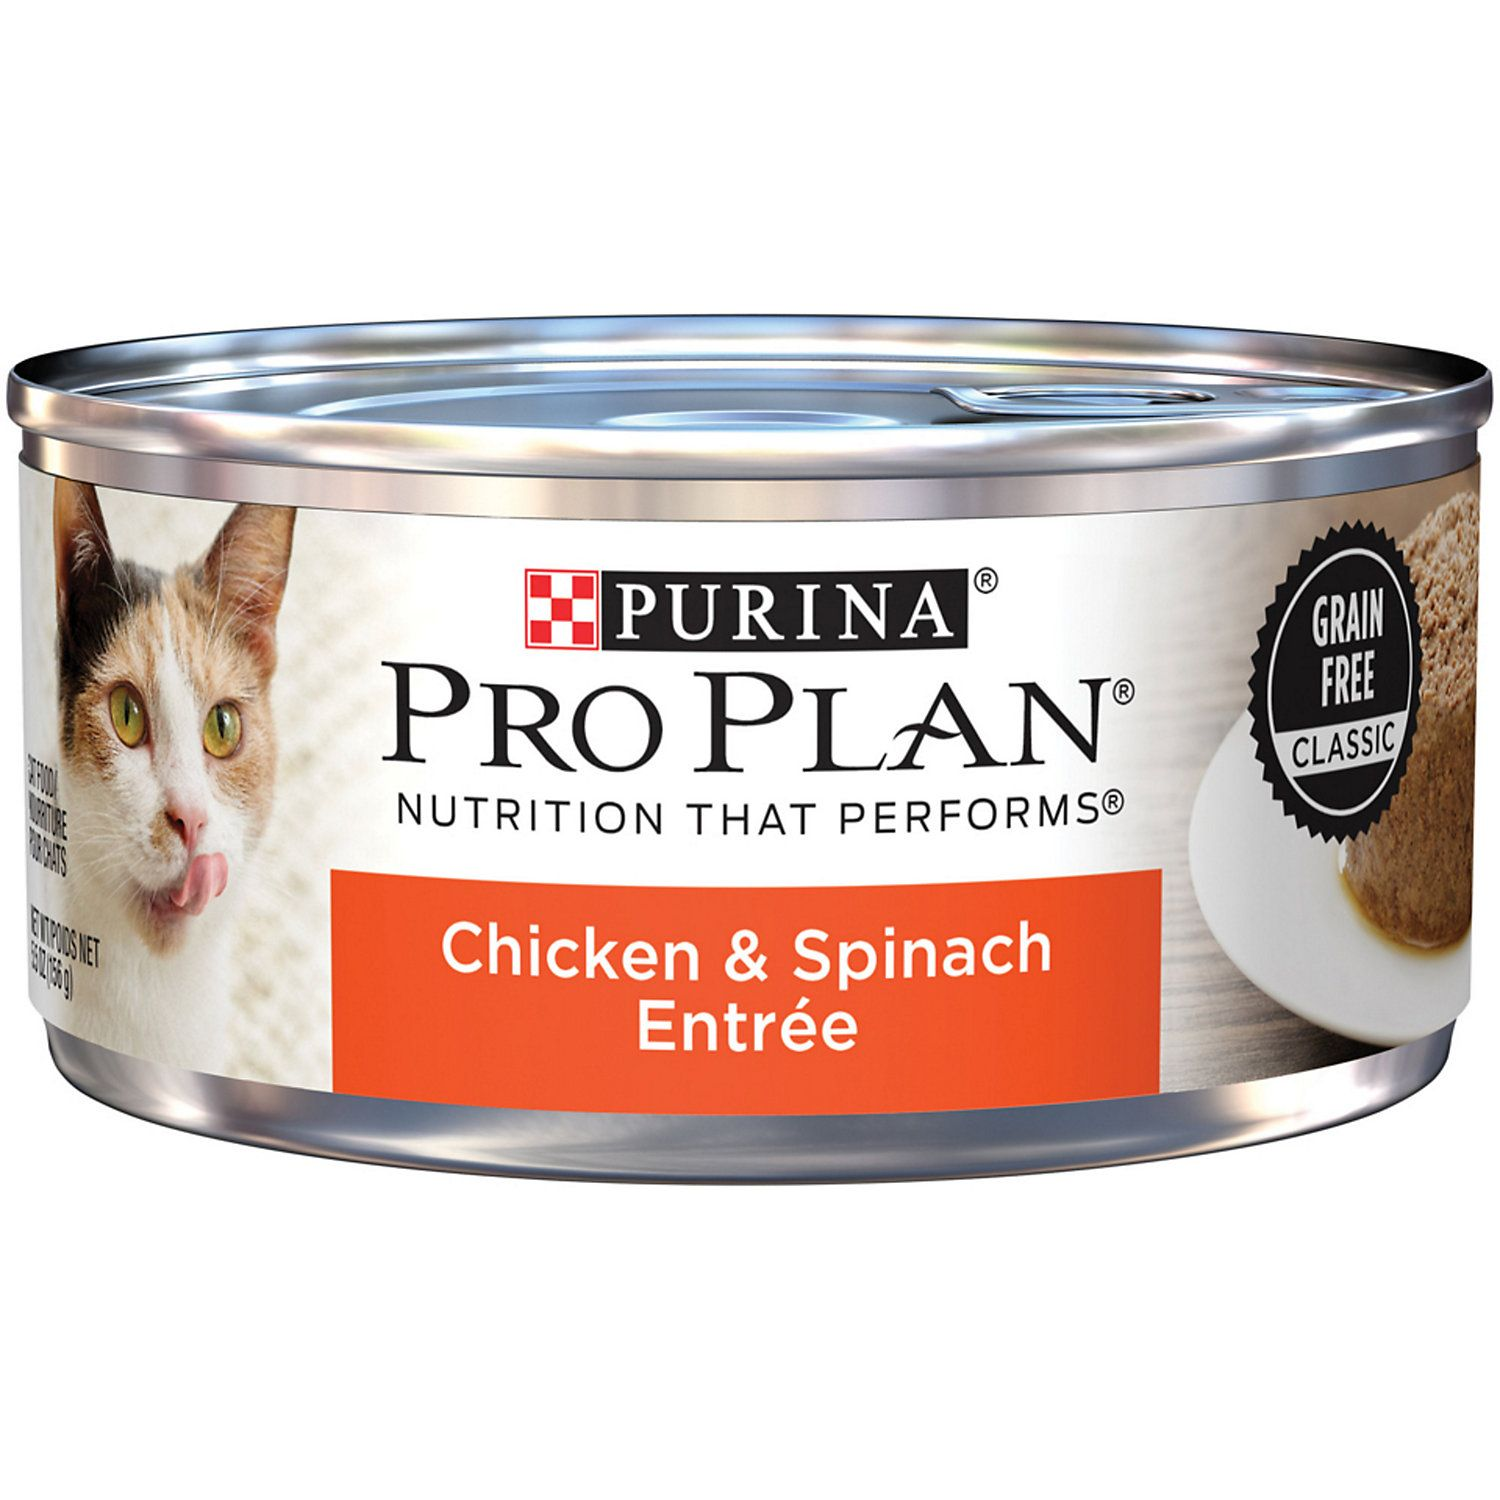 Purina Pro Plan Grain Free Classic Chicken Spinach Entree Adult Wet Cat Food Canned Cat Food Purina Pro Plan Cat Food